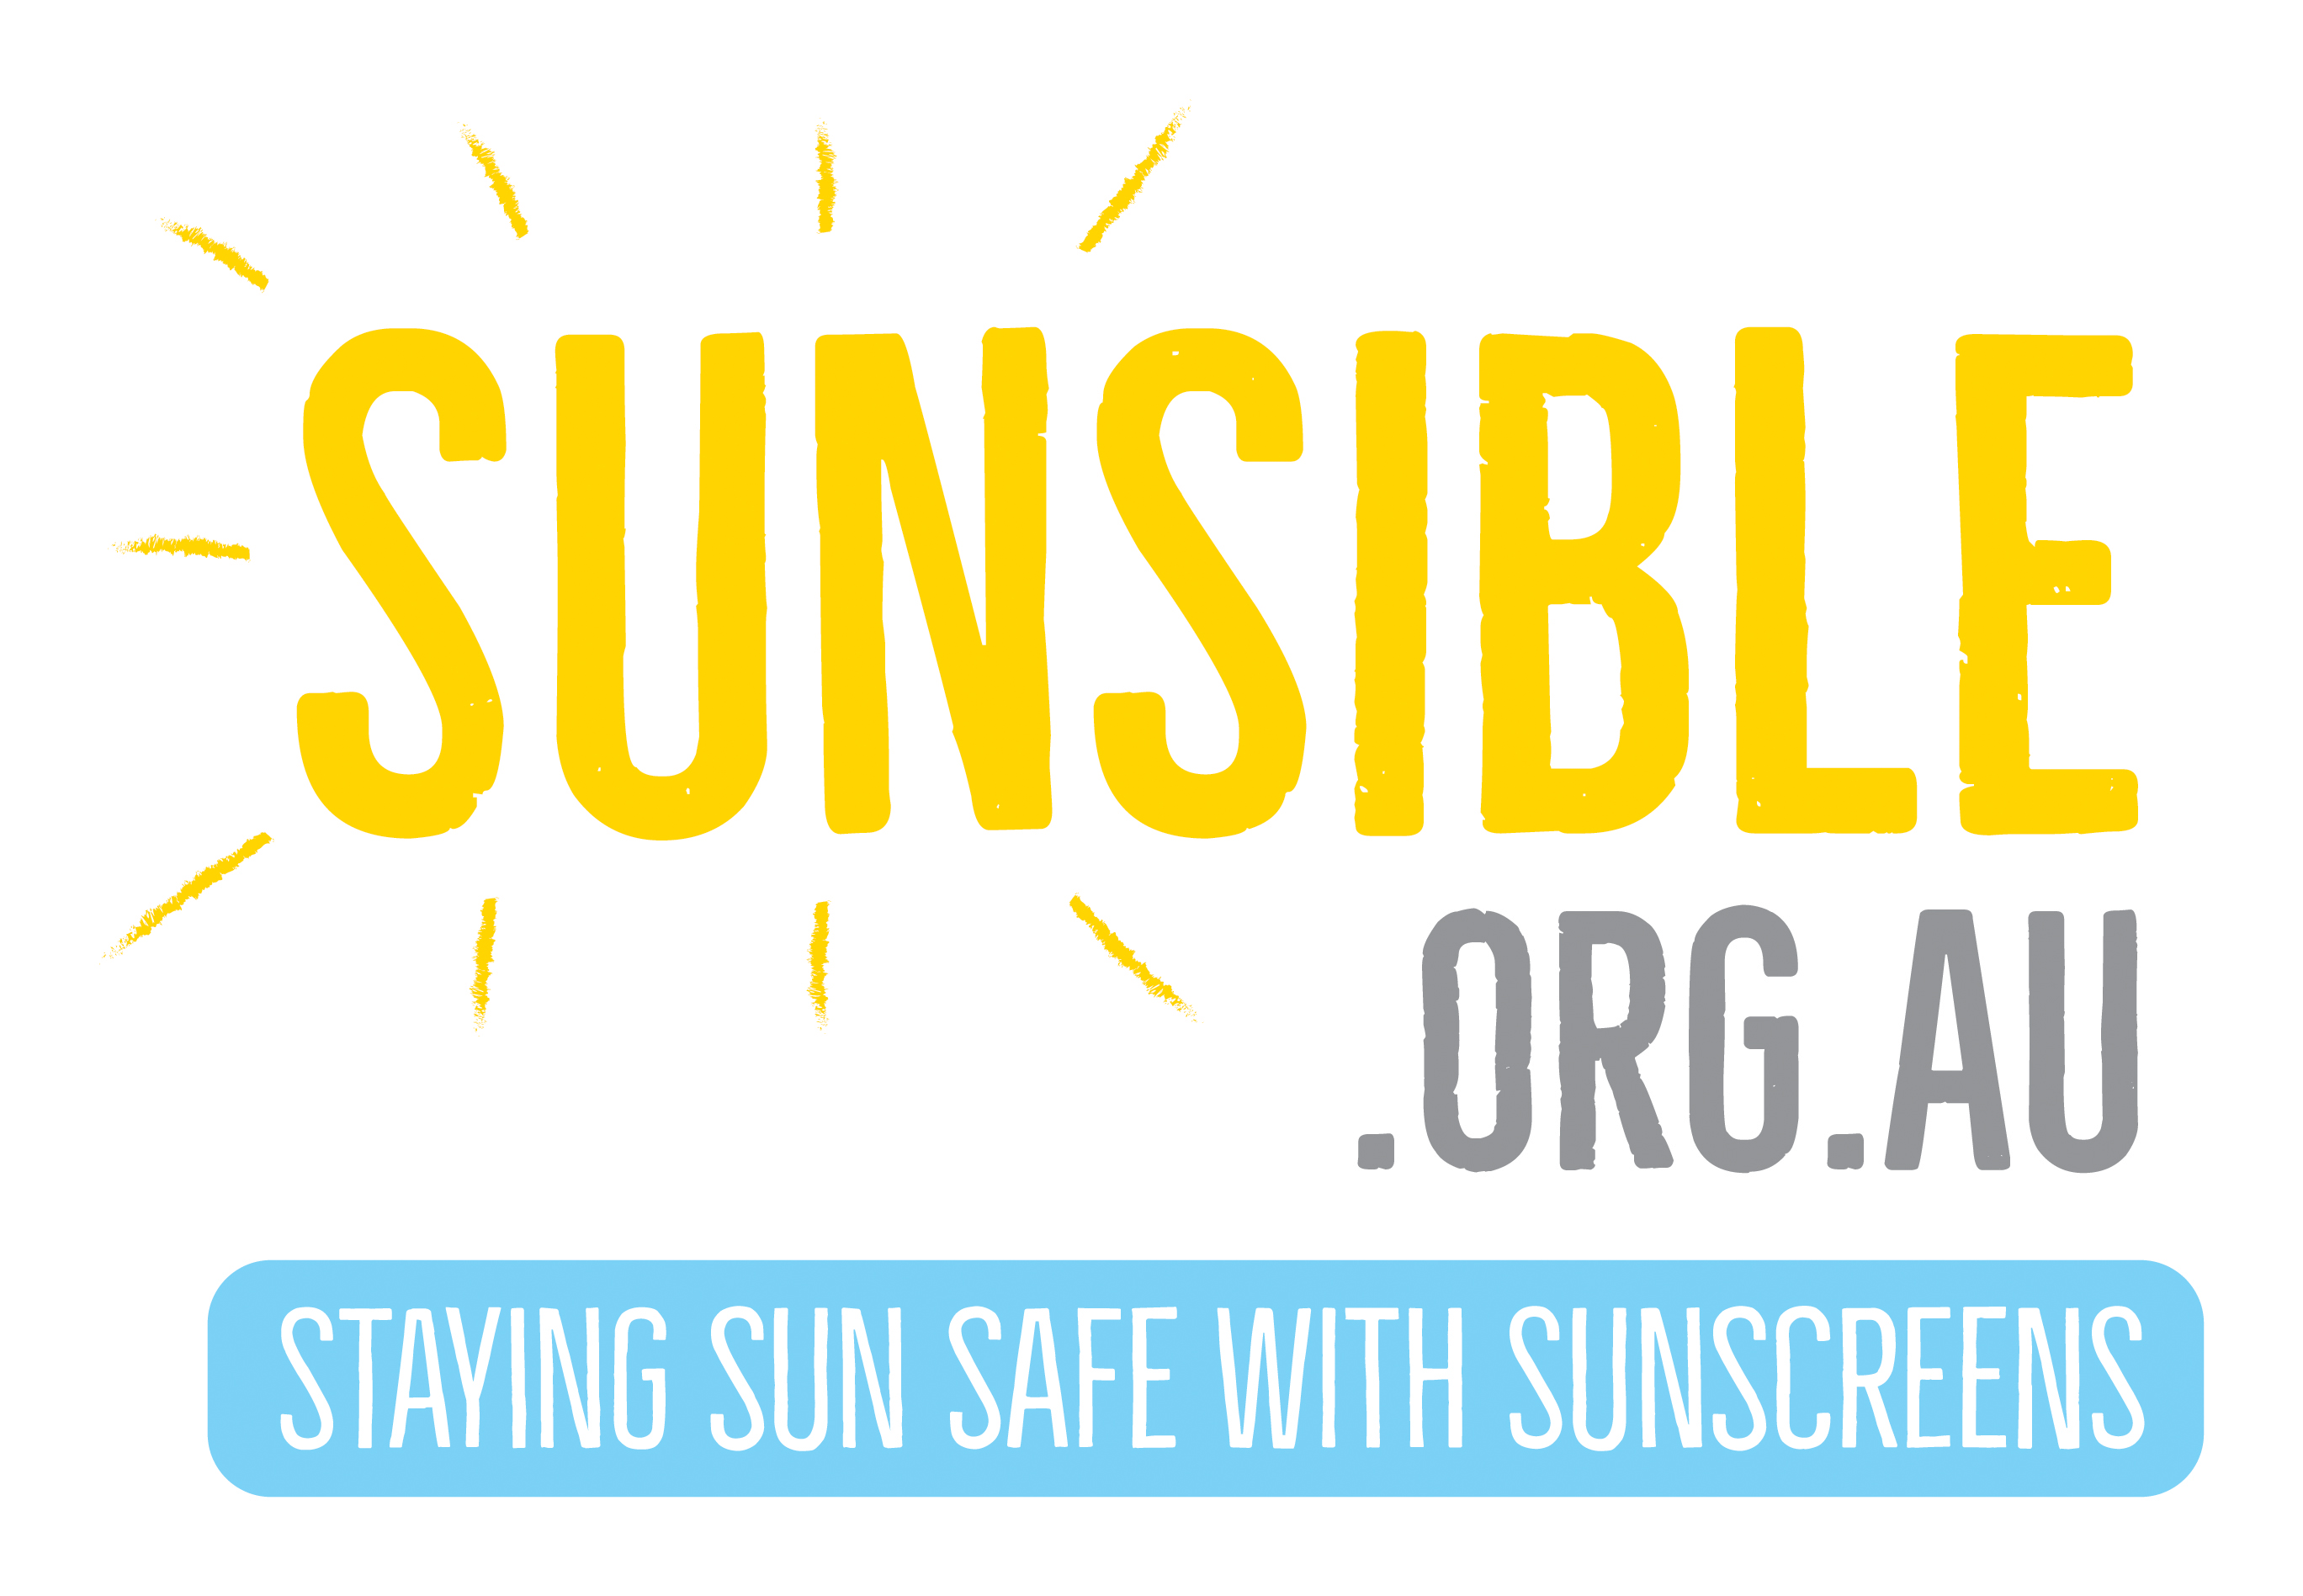 Sunsible sunscreen use